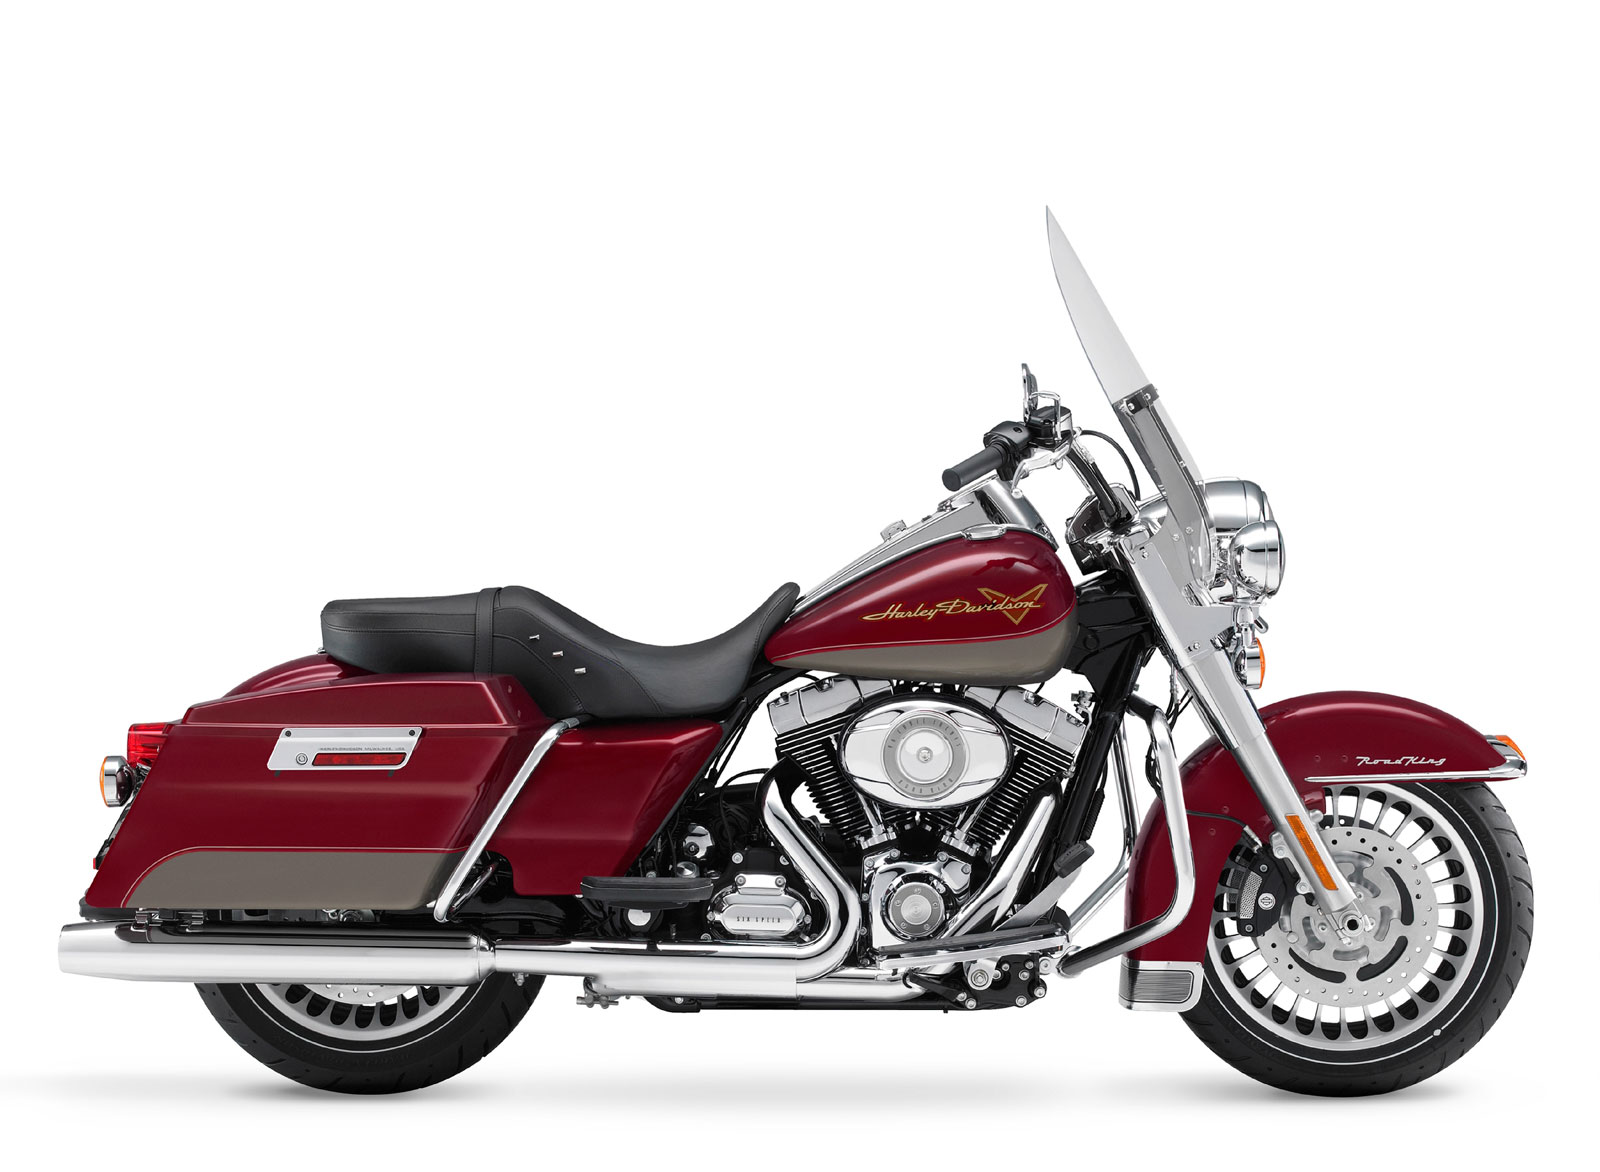 2009 Harley-Davidson FLHR Road King Motorcycles